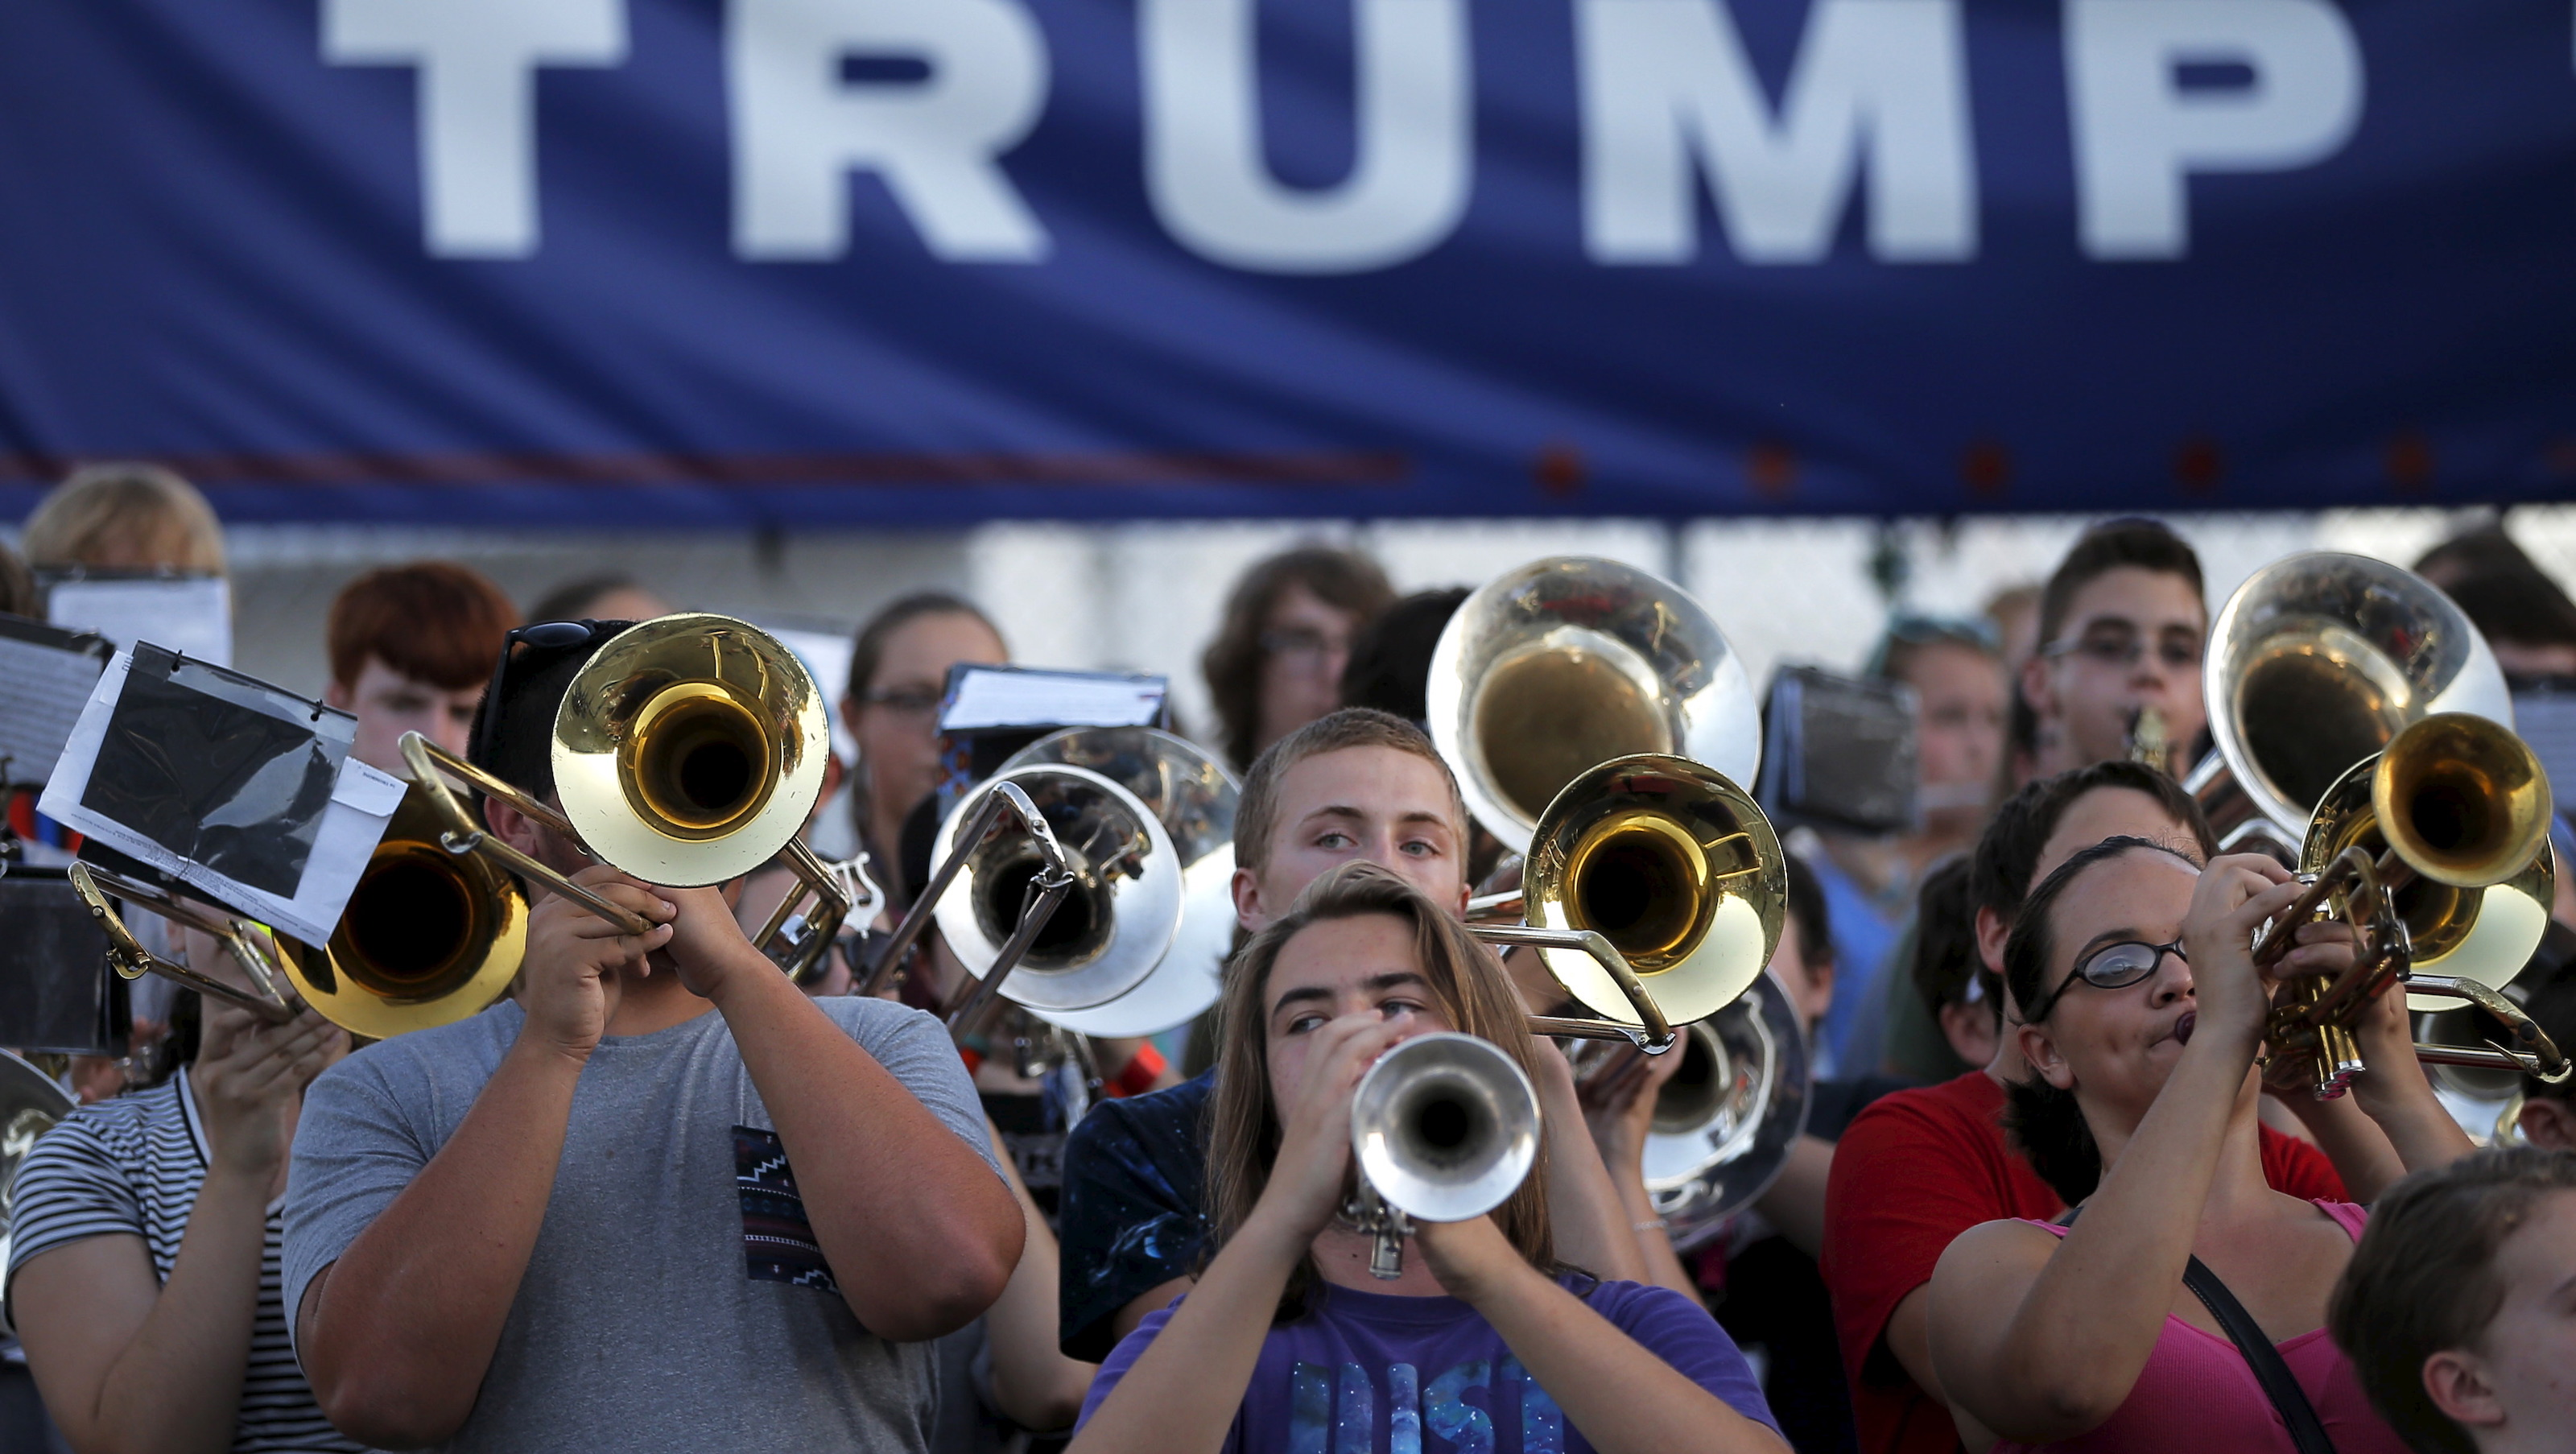 Members of the Spaulding High School marching band play before a campaign town hall meeting with U.S. Republican presidential candidate Donald Trump in Rochester, New Hampshire September 17, 2015.     REUTERS/Brian Snyder - RTS1NH3